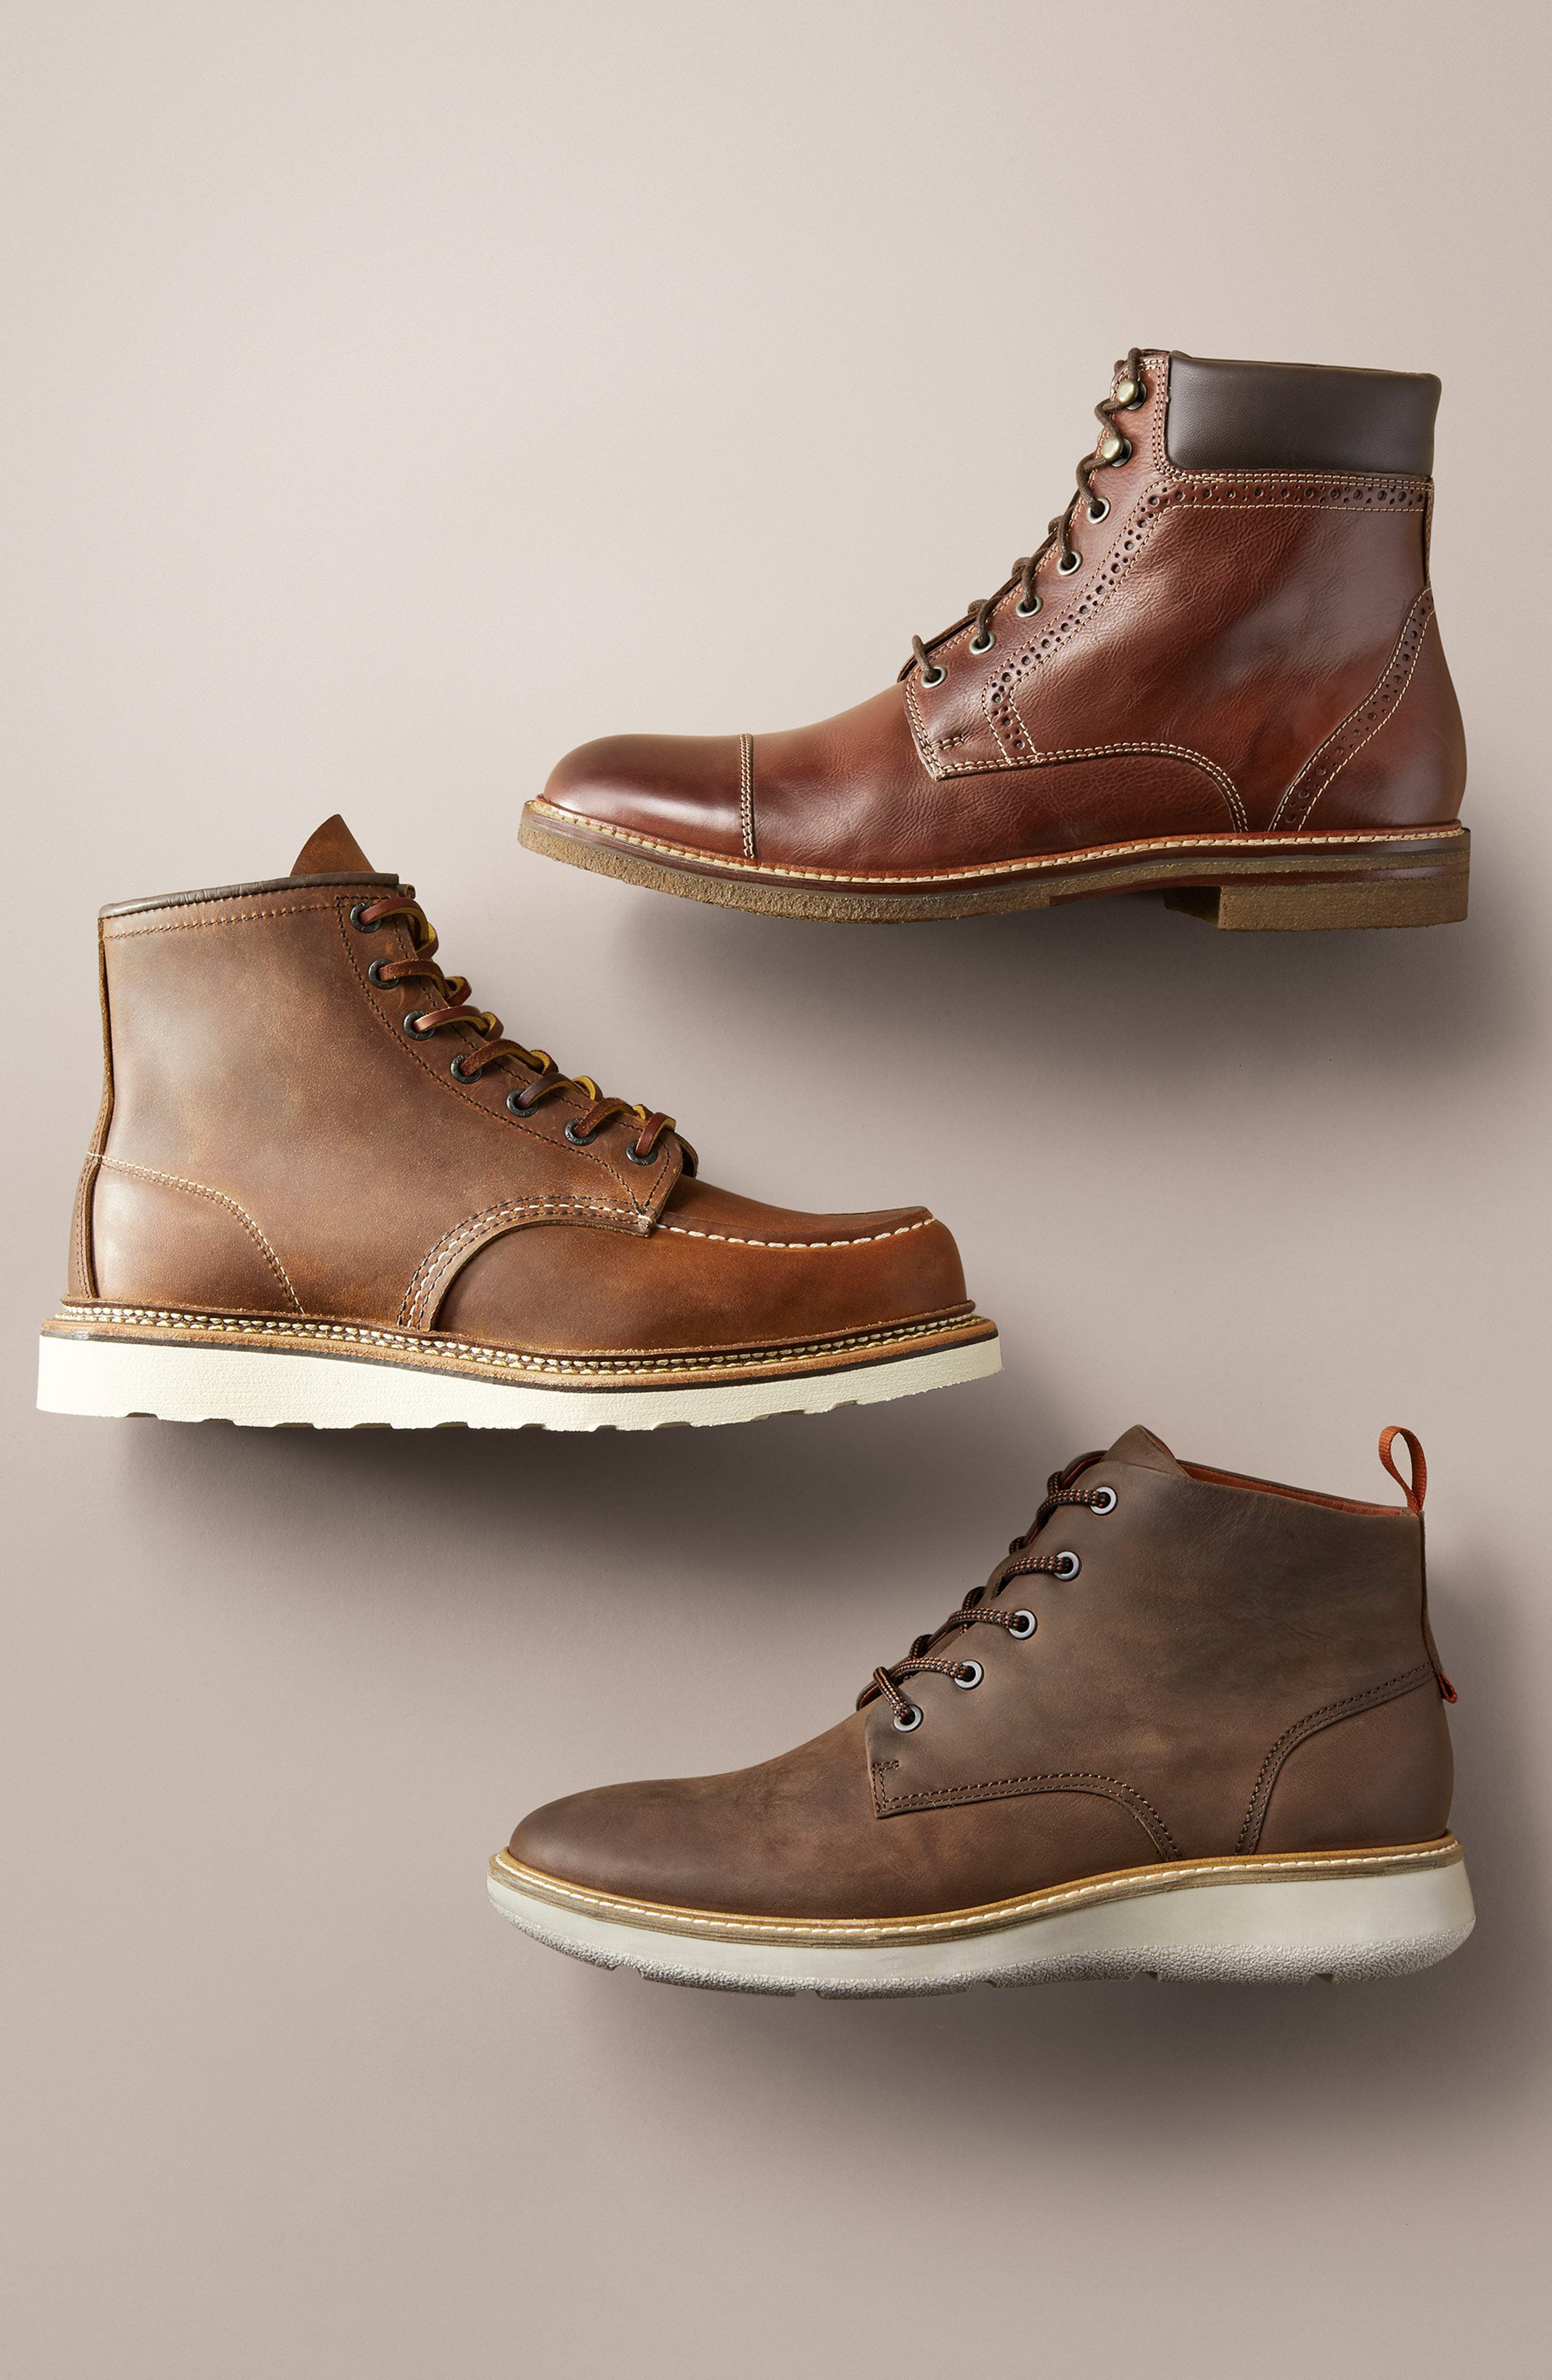 6 Inch Moc Toe Boot,                             Alternate thumbnail 8, color,